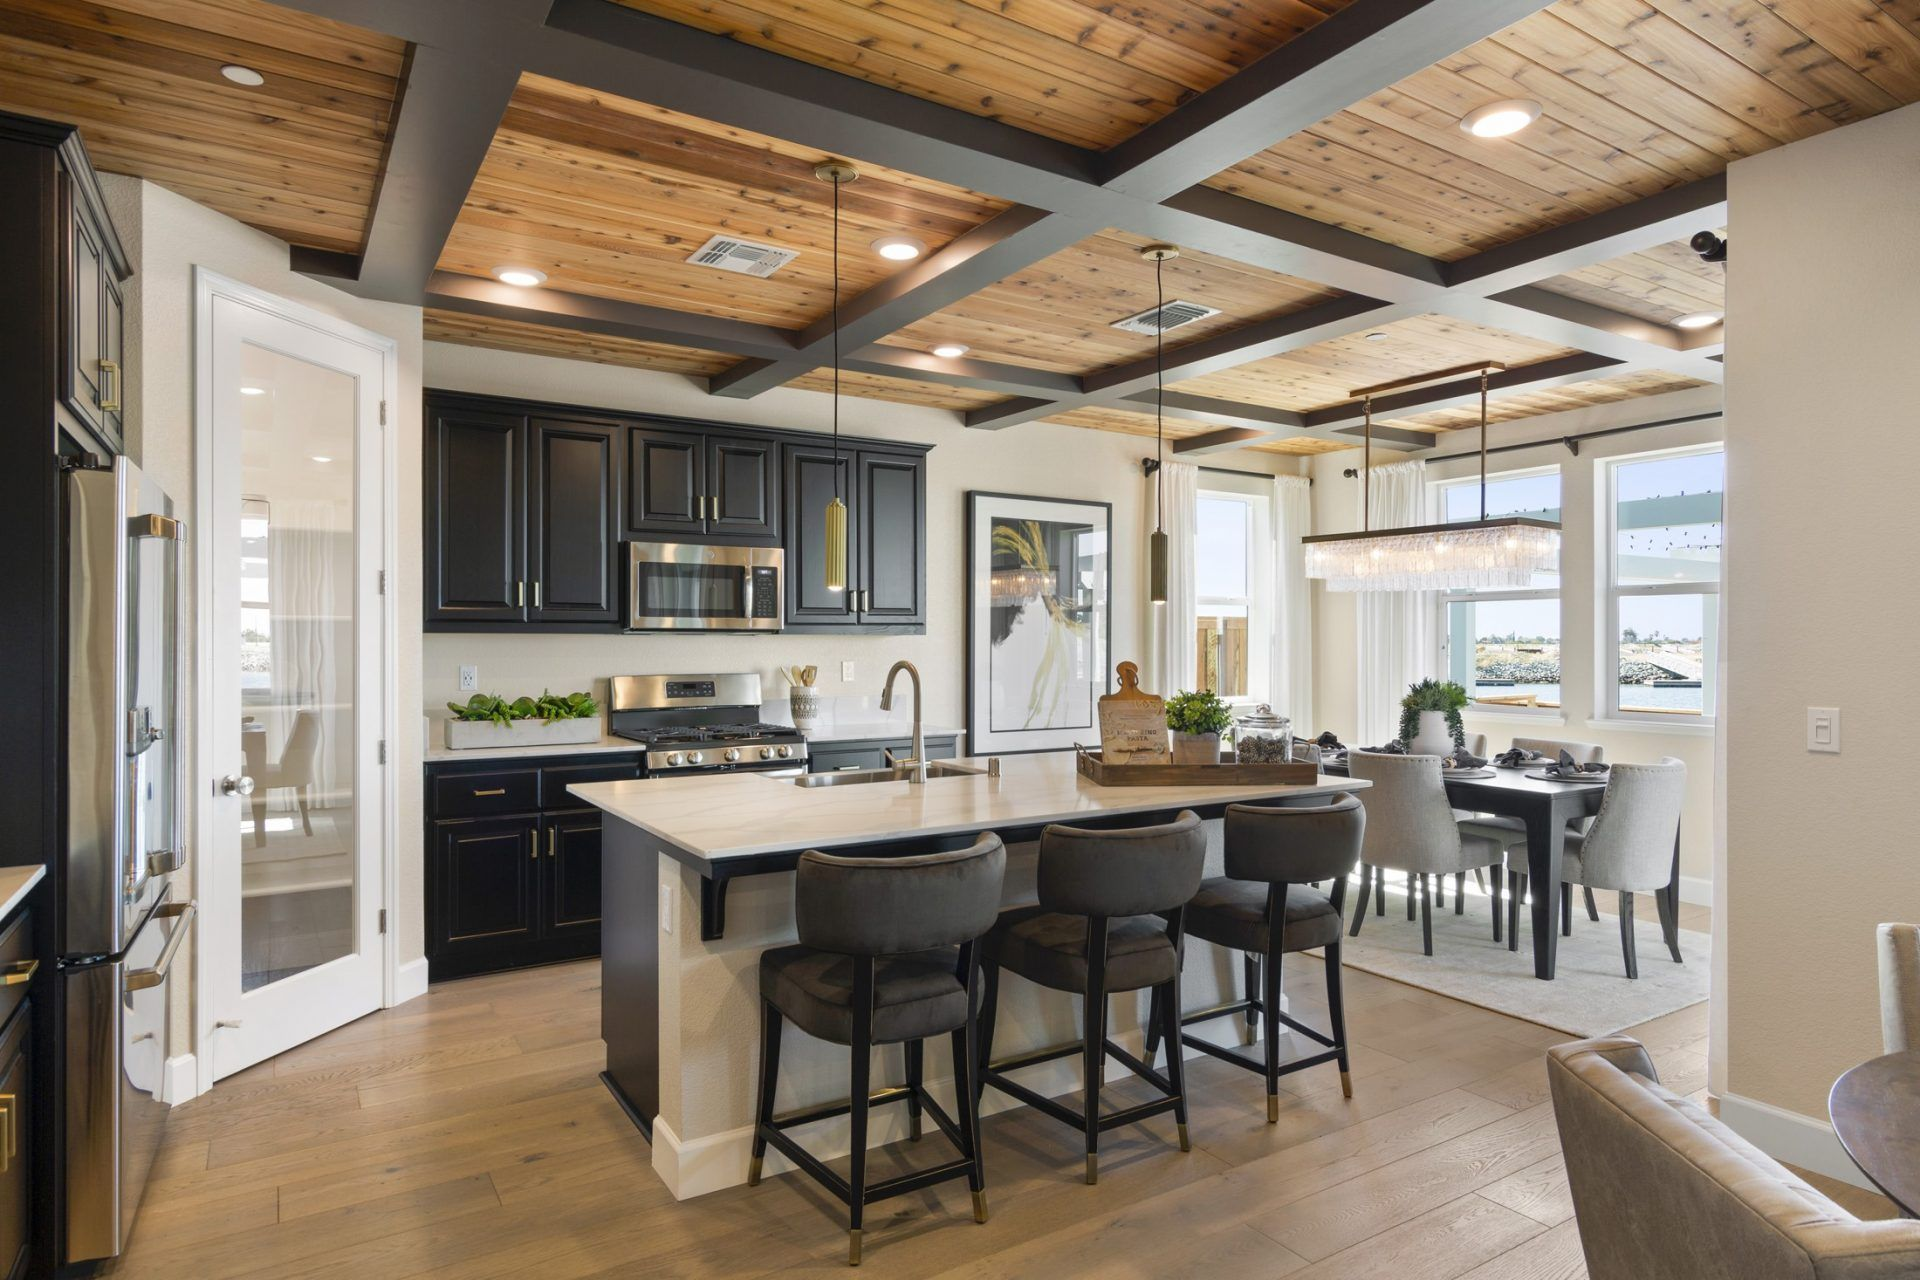 Kitchen featured in the Cyan By Blue Mountain Communities in Oakland-Alameda, CA